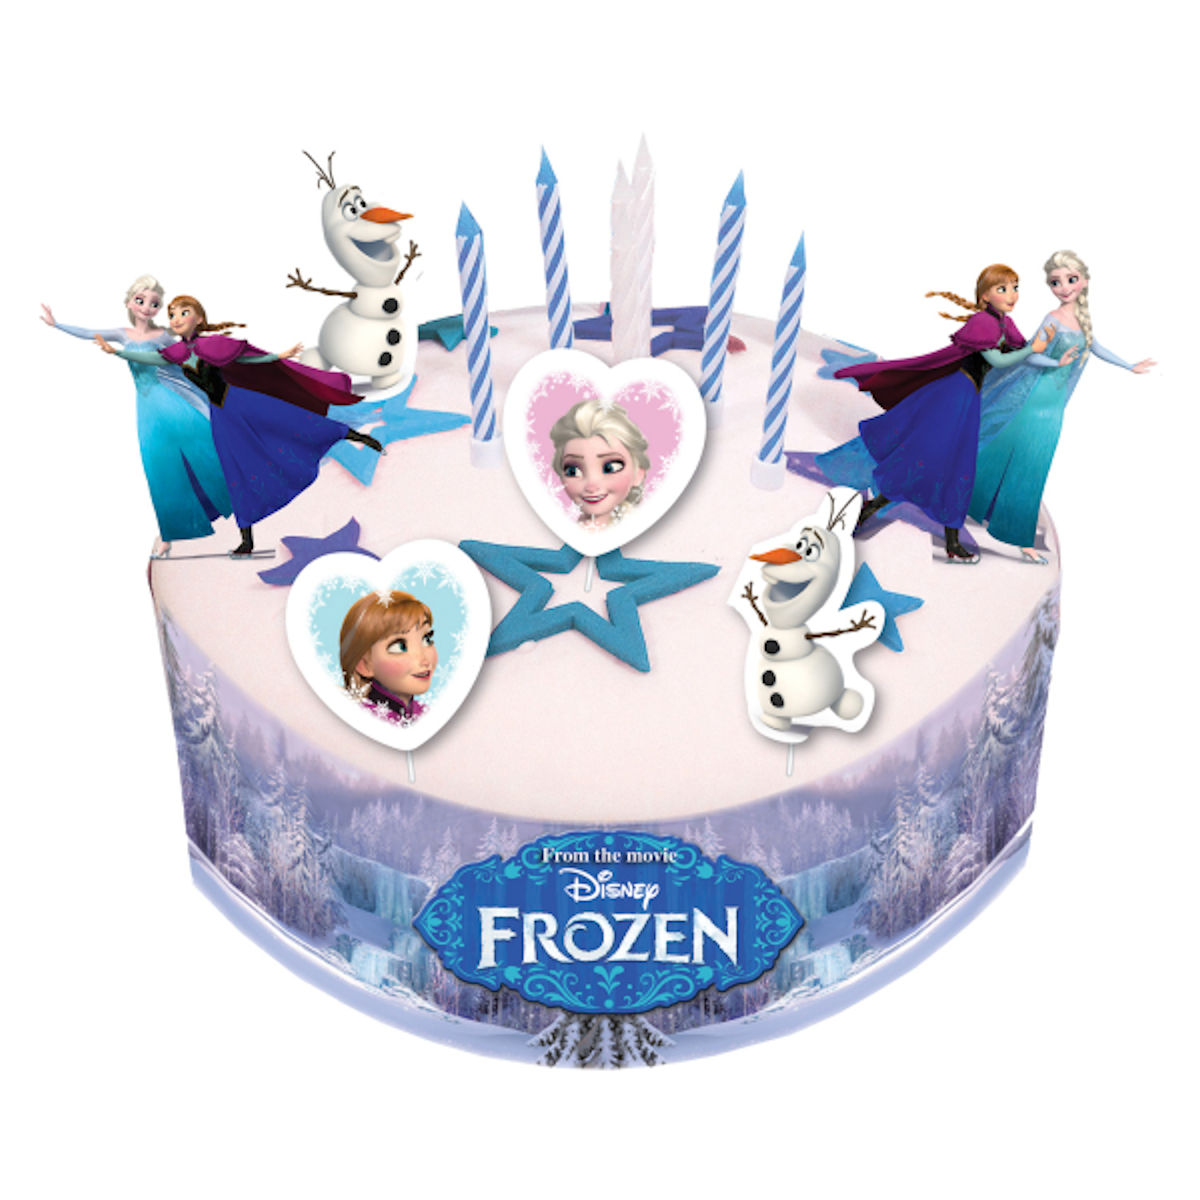 Disney Frozen Birthday Cake Decorating Kit Party with ...